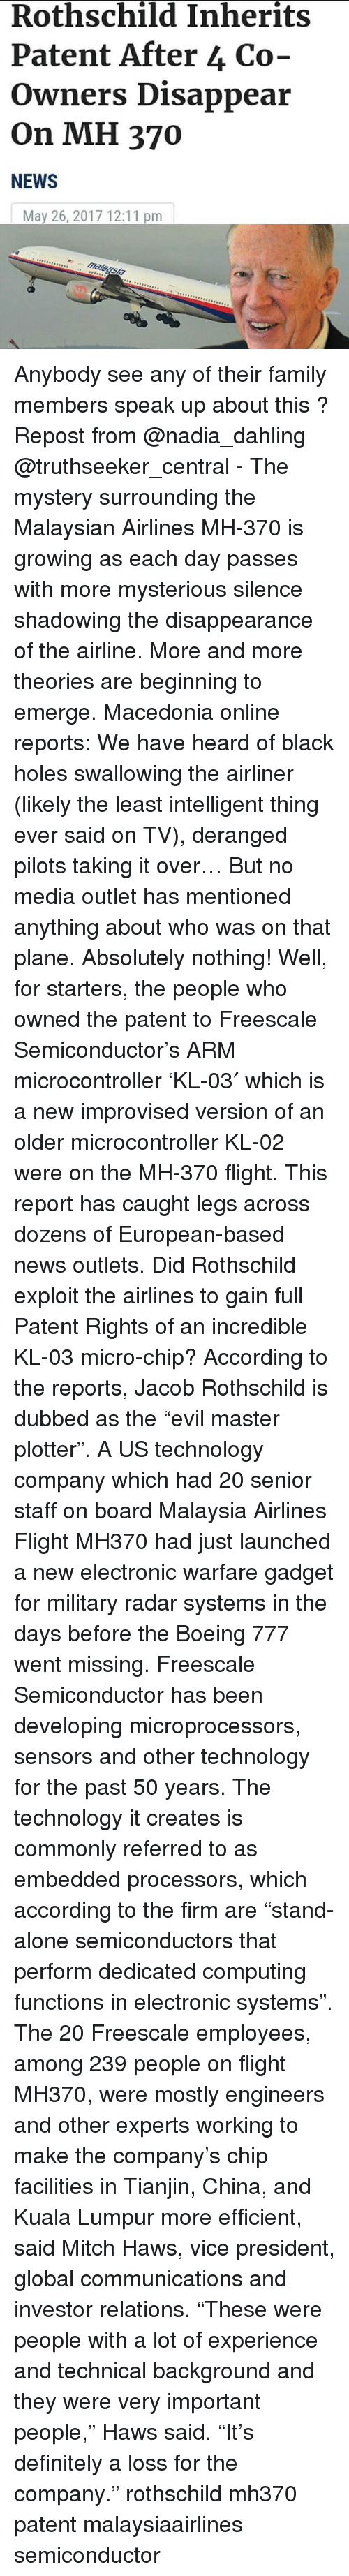 "Jacob Rothschild: Rothschild Inherits  Patent After 4 Co-  Owners Disappear  On MH 370  NEWS  May 26, 2017 12:11 pm Anybody see any of their family members speak up about this ? Repost from @nadia_dahling @truthseeker_central - The mystery surrounding the Malaysian Airlines MH-370 is growing as each day passes with more mysterious silence shadowing the disappearance of the airline. More and more theories are beginning to emerge. Macedonia online reports: We have heard of black holes swallowing the airliner (likely the least intelligent thing ever said on TV), deranged pilots taking it over… But no media outlet has mentioned anything about who was on that plane. Absolutely nothing! Well, for starters, the people who owned the patent to Freescale Semiconductor's ARM microcontroller 'KL-03′ which is a new improvised version of an older microcontroller KL-02 were on the MH-370 flight. This report has caught legs across dozens of European-based news outlets. Did Rothschild exploit the airlines to gain full Patent Rights of an incredible KL-03 micro-chip? According to the reports, Jacob Rothschild is dubbed as the ""evil master plotter"". A US technology company which had 20 senior staff on board Malaysia Airlines Flight MH370 had just launched a new electronic warfare gadget for military radar systems in the days before the Boeing 777 went missing. Freescale Semiconductor has been developing microprocessors, sensors and other technology for the past 50 years. The technology it creates is commonly referred to as embedded processors, which according to the firm are ""stand-alone semiconductors that perform dedicated computing functions in electronic systems"". The 20 Freescale employees, among 239 people on flight MH370, were mostly engineers and other experts working to make the company's chip facilities in Tianjin, China, and Kuala Lumpur more efficient, said Mitch Haws, vice president, global communications and investor relations. ""These were people with a lot of experience and technical background and they were very important people,"" Haws said. ""It's definitely a loss for the company."" rothschild mh370 patent malaysiaairlines semiconductor"